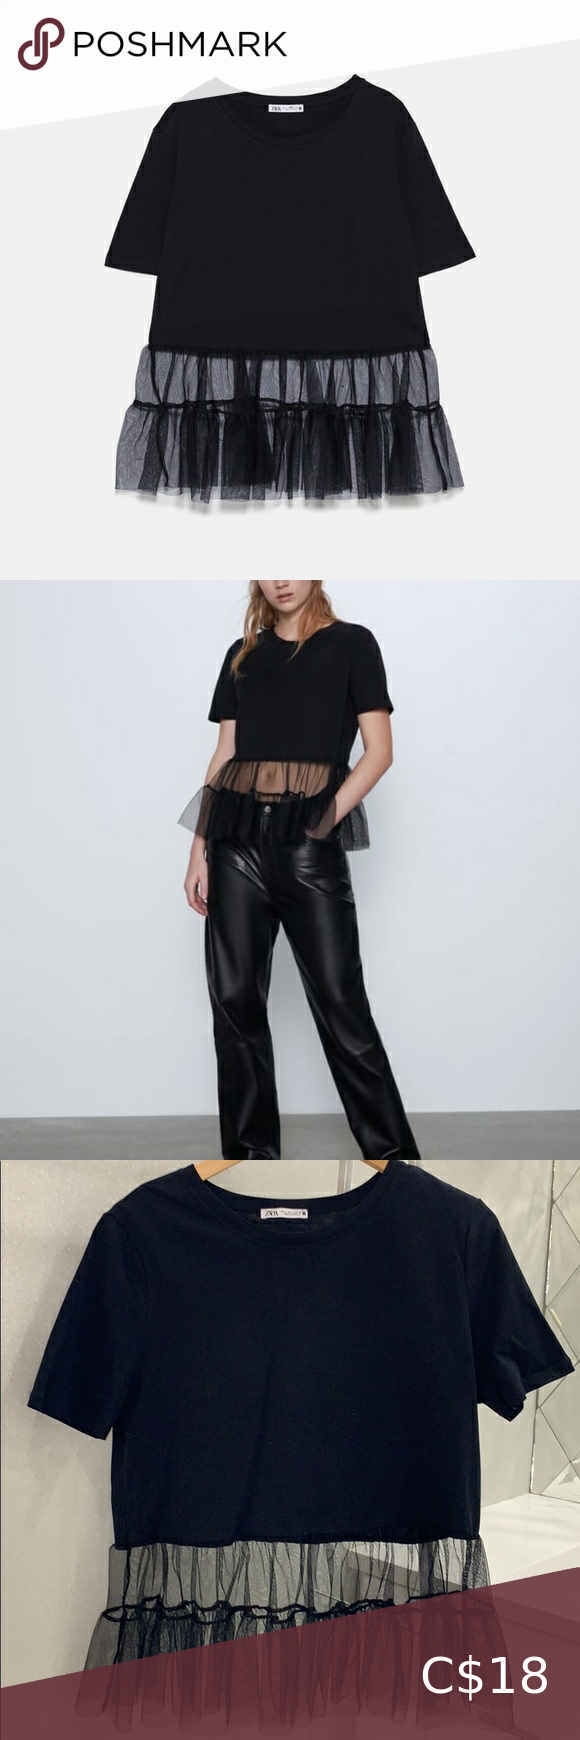 Zara // Black Tulle T-shirt with Ruffles